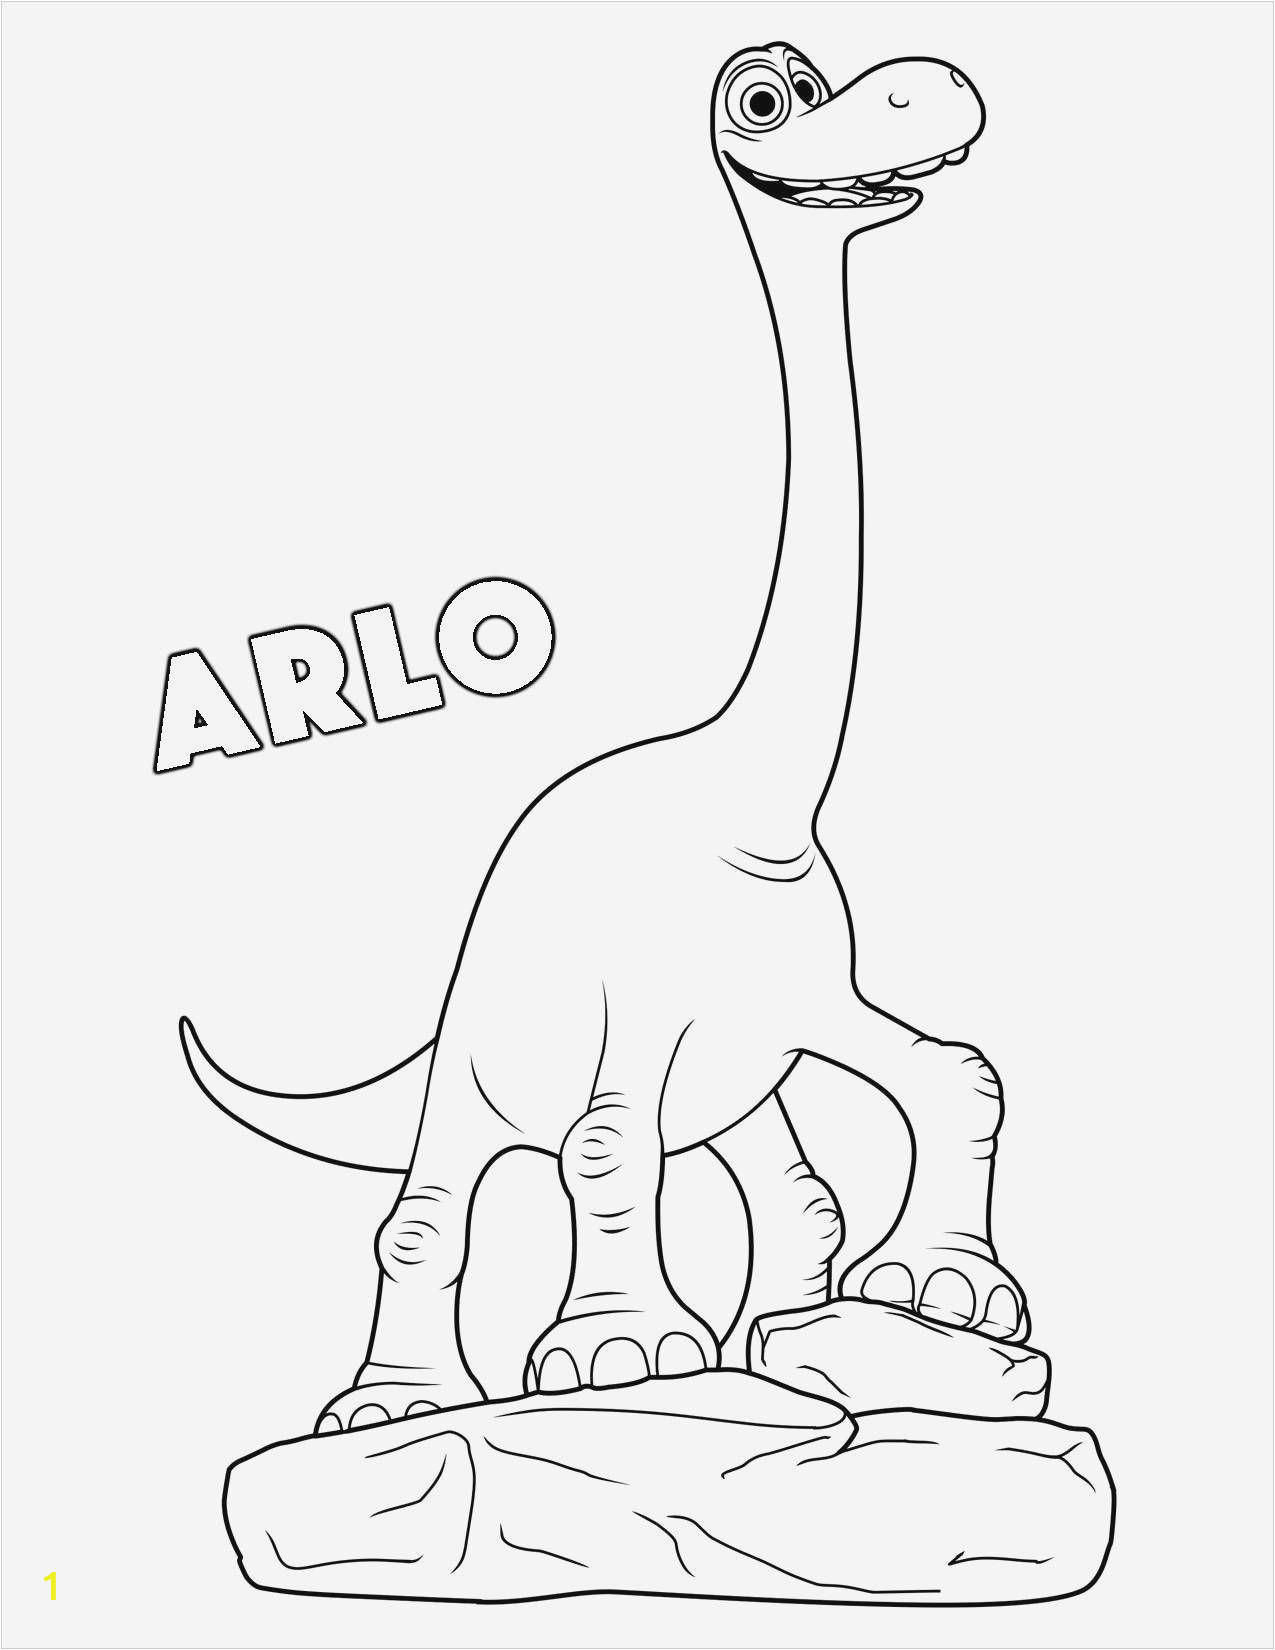 simple dinosaur coloring pages inspirational c2a2 c2b7 childrens printable coloring pages luxury new od dog of simple dinosaur coloring pages